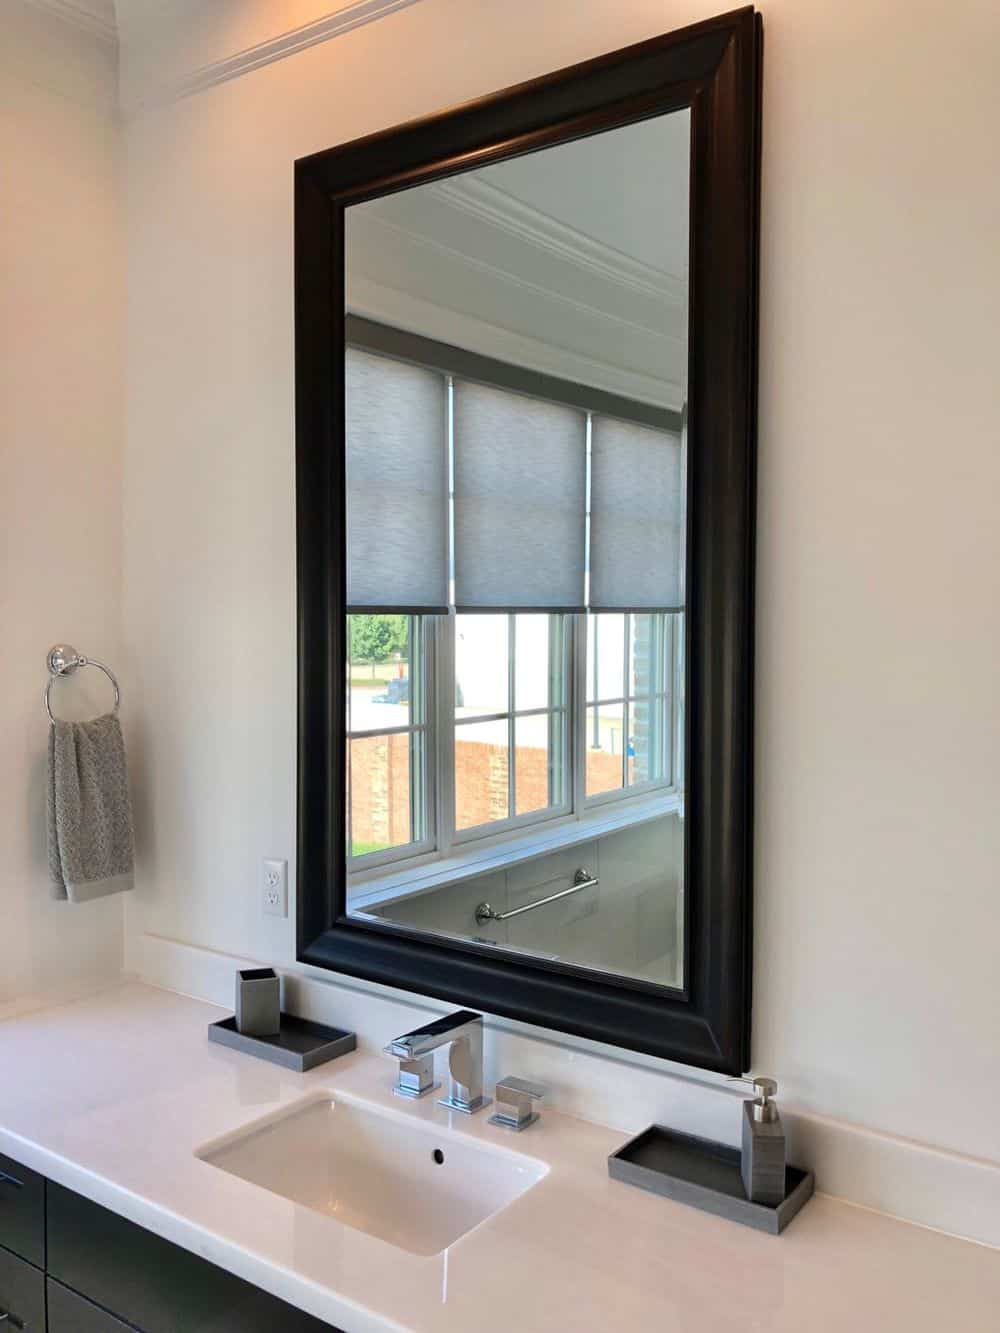 A focused look at this home's sink counter with a mirror reflecting the view of the windows behind, featuring window shades.